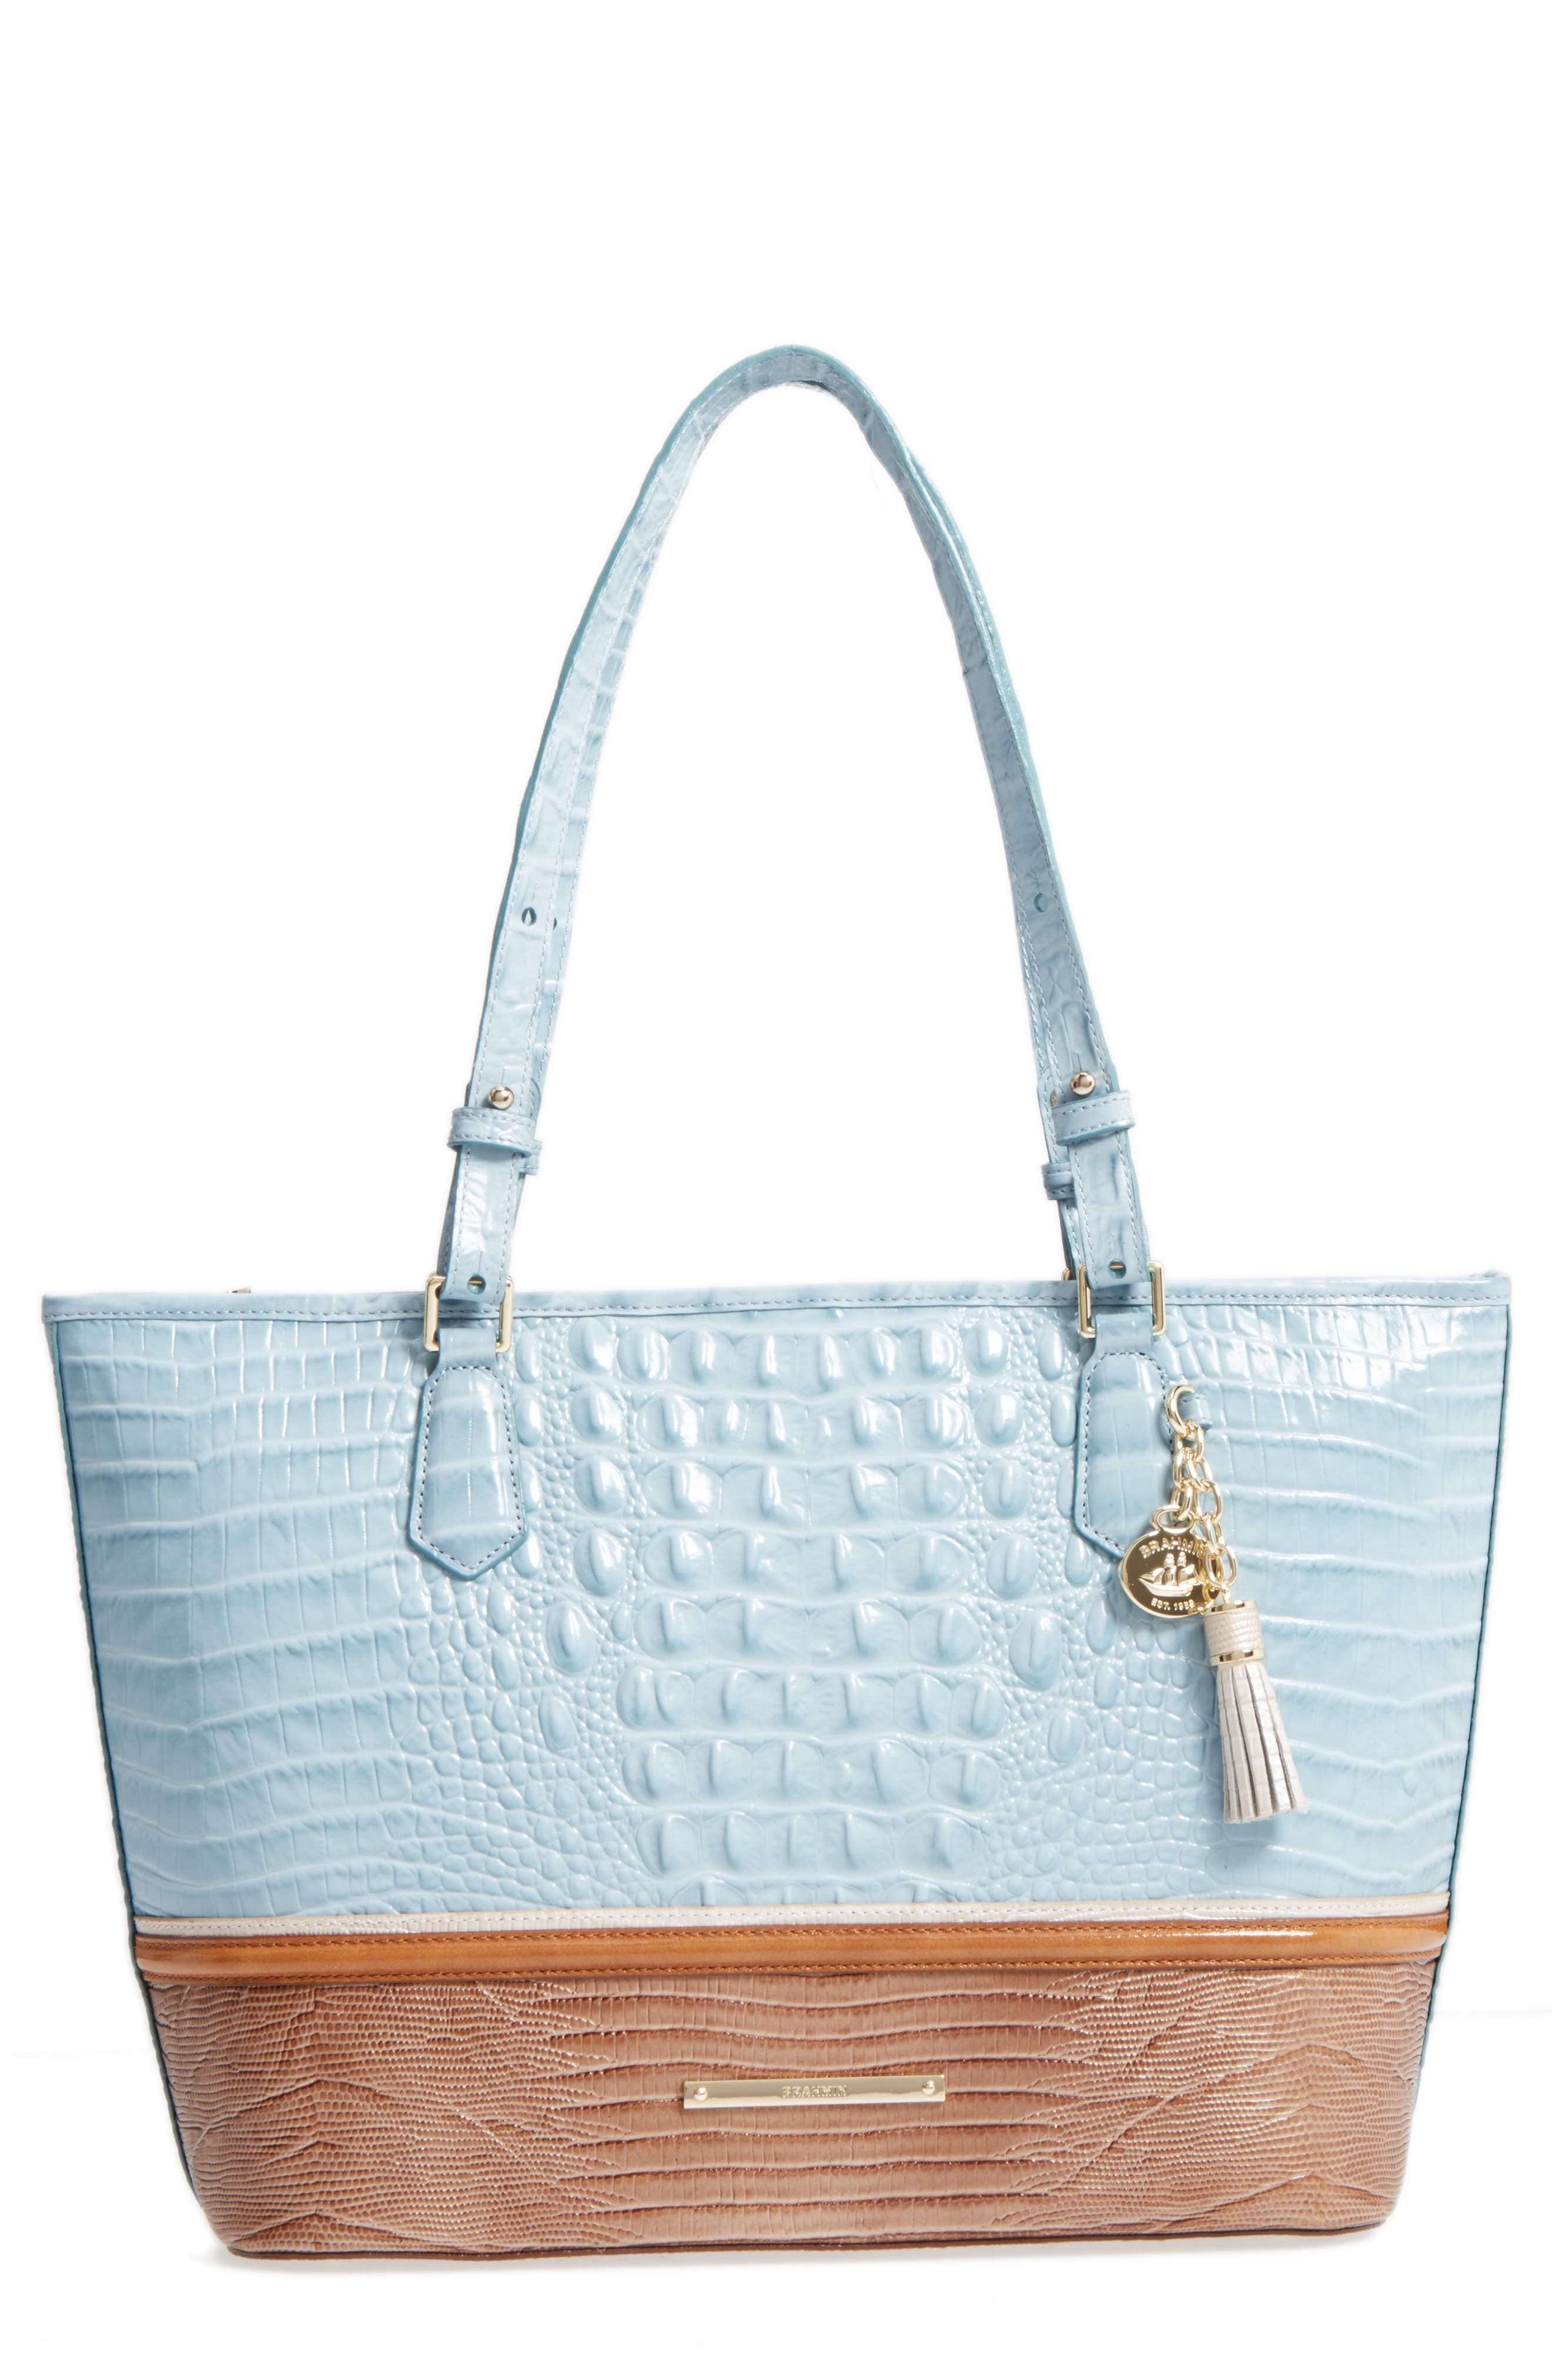 Medium Asher Leather Tote,                             Main thumbnail 1, color,                             Sky